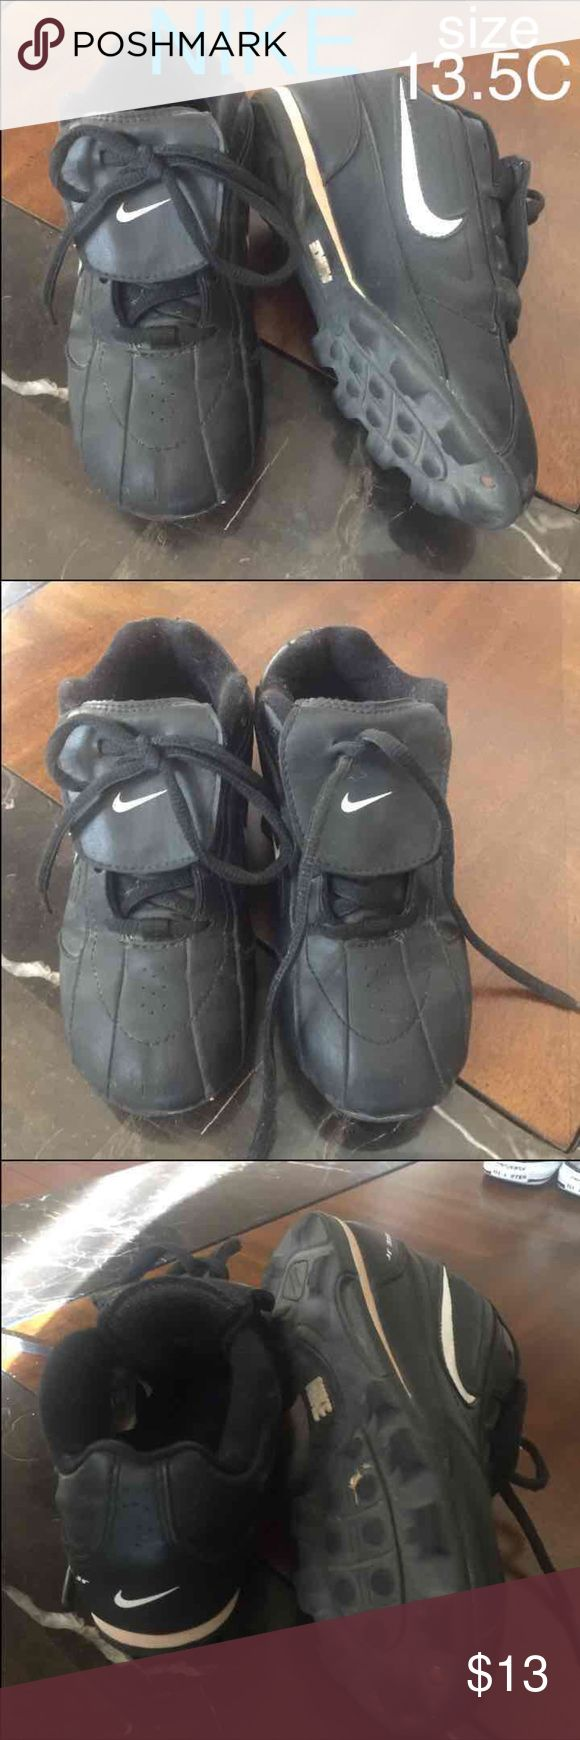 NIKE boy's baseball cleats ✨BUNDLE FOR A GREAT DEAL!! 😃 Pay one shipping fee plus get a DISCOUNT!!! 😁😁  Nike baseball cleats/ t-ball cleats for kids, size 13.5C 💥 IN GREAT condition ☺️   Boys cleats  Athletic shoes Nike Shoes Sneakers